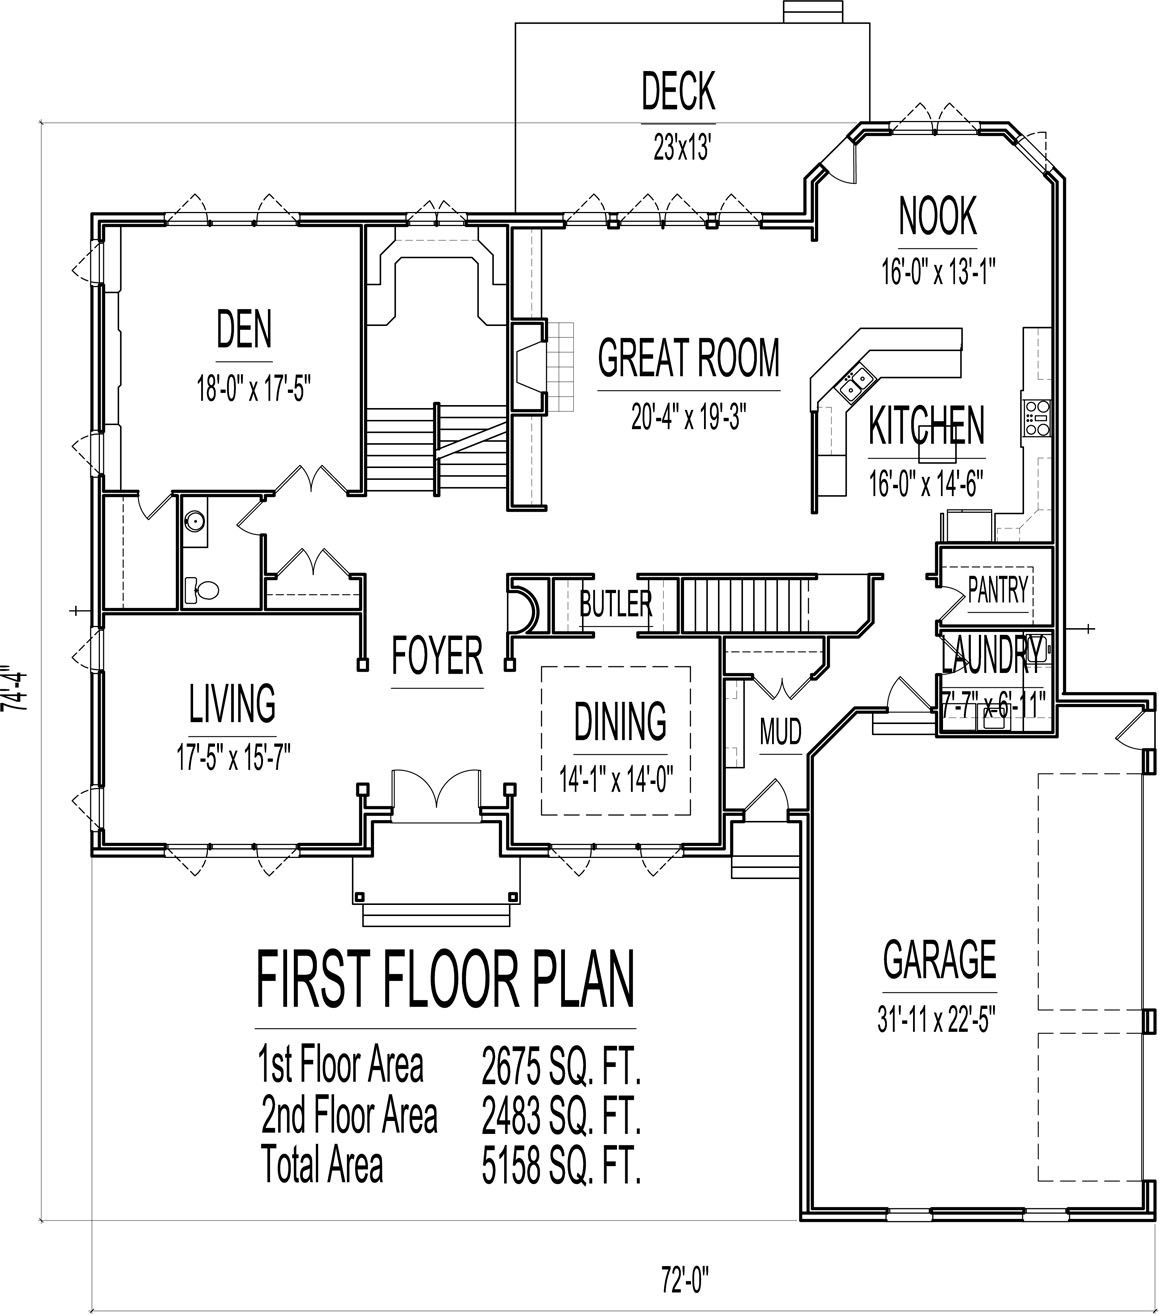 5 bedroom 2 story 5000 sq ft house floor plans stone and 4000 sq ft office plan